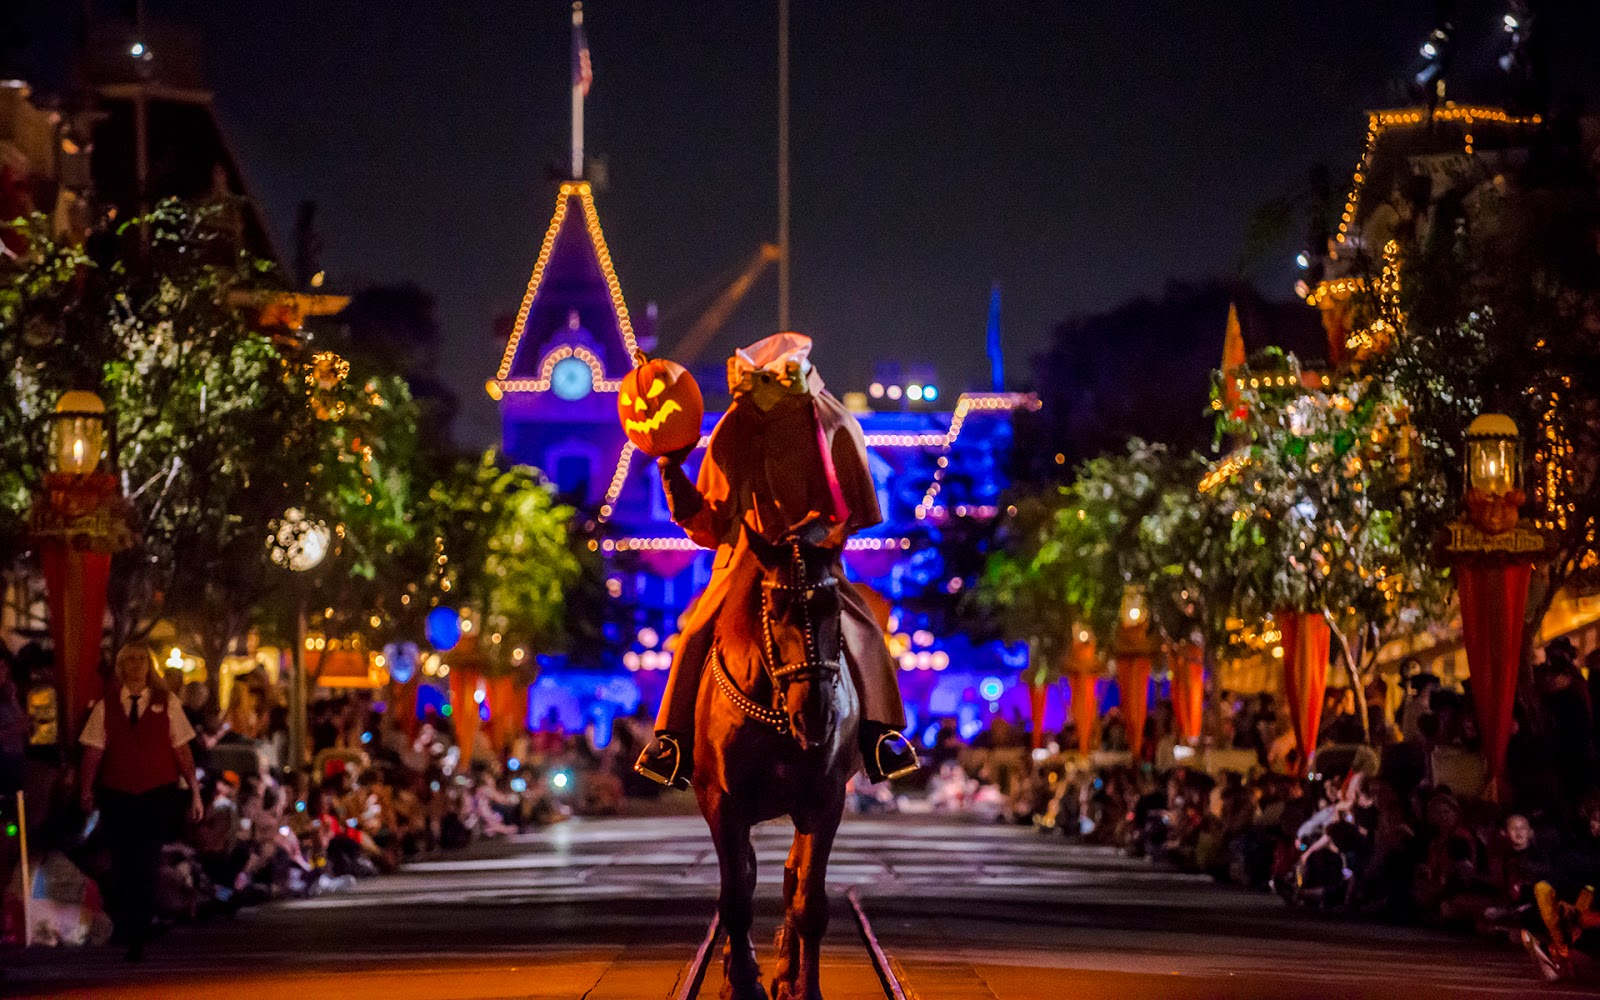 Headless Horseman in Disneyland